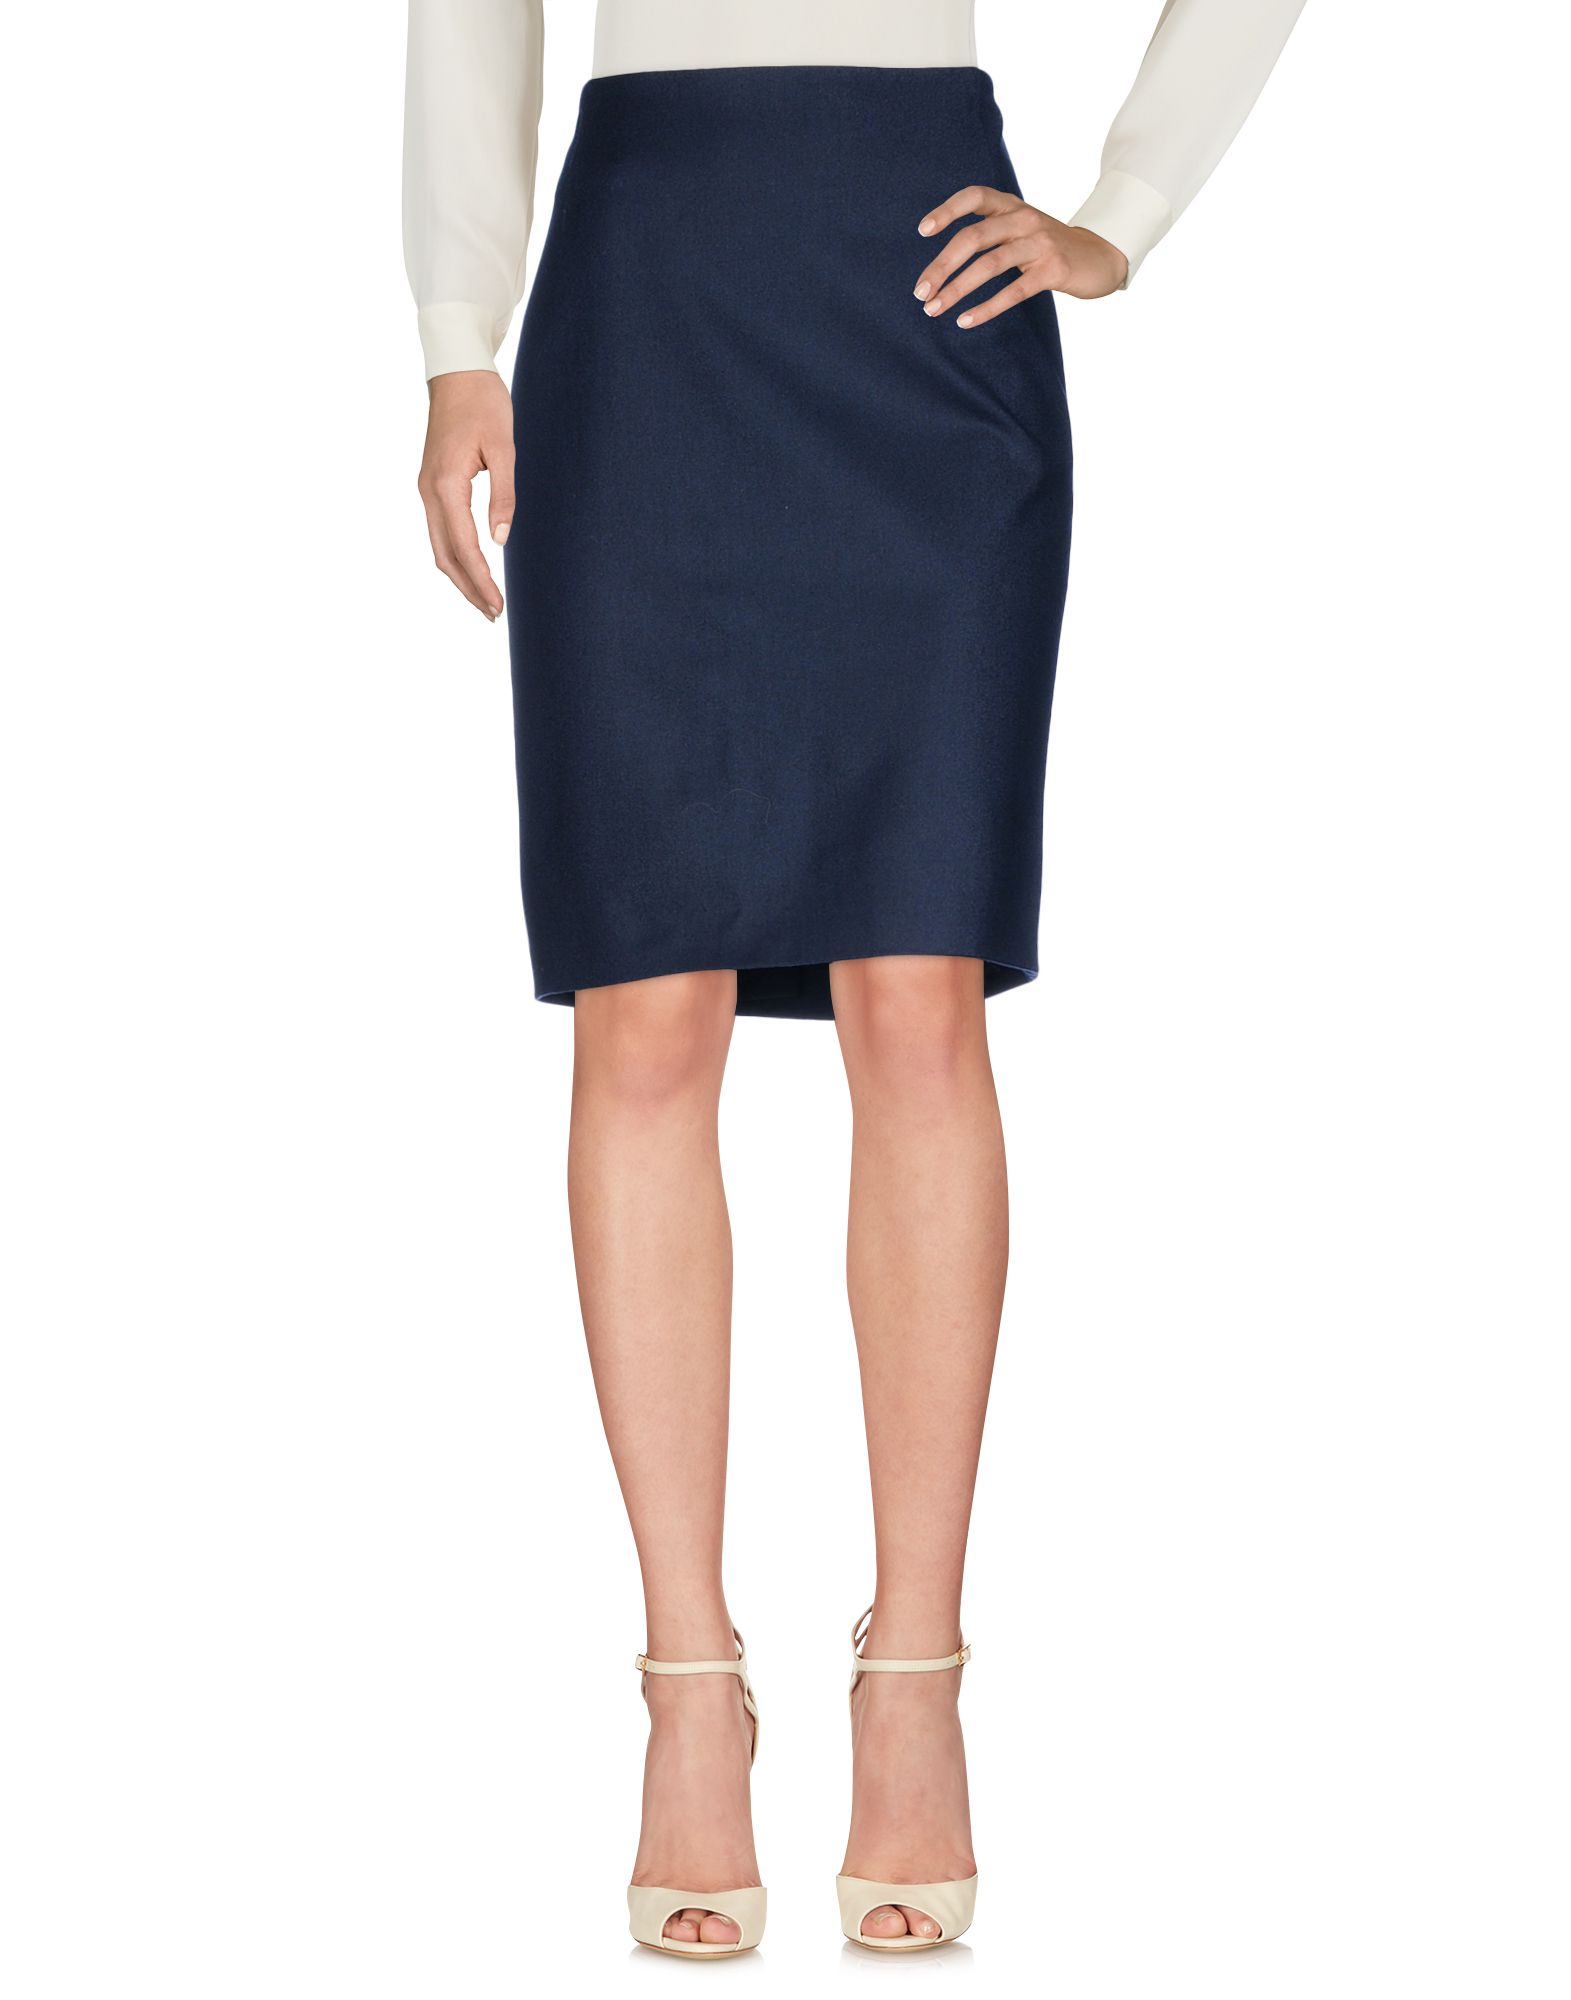 BARBARA LOHMANN Knee Length Skirt in Dark Blue